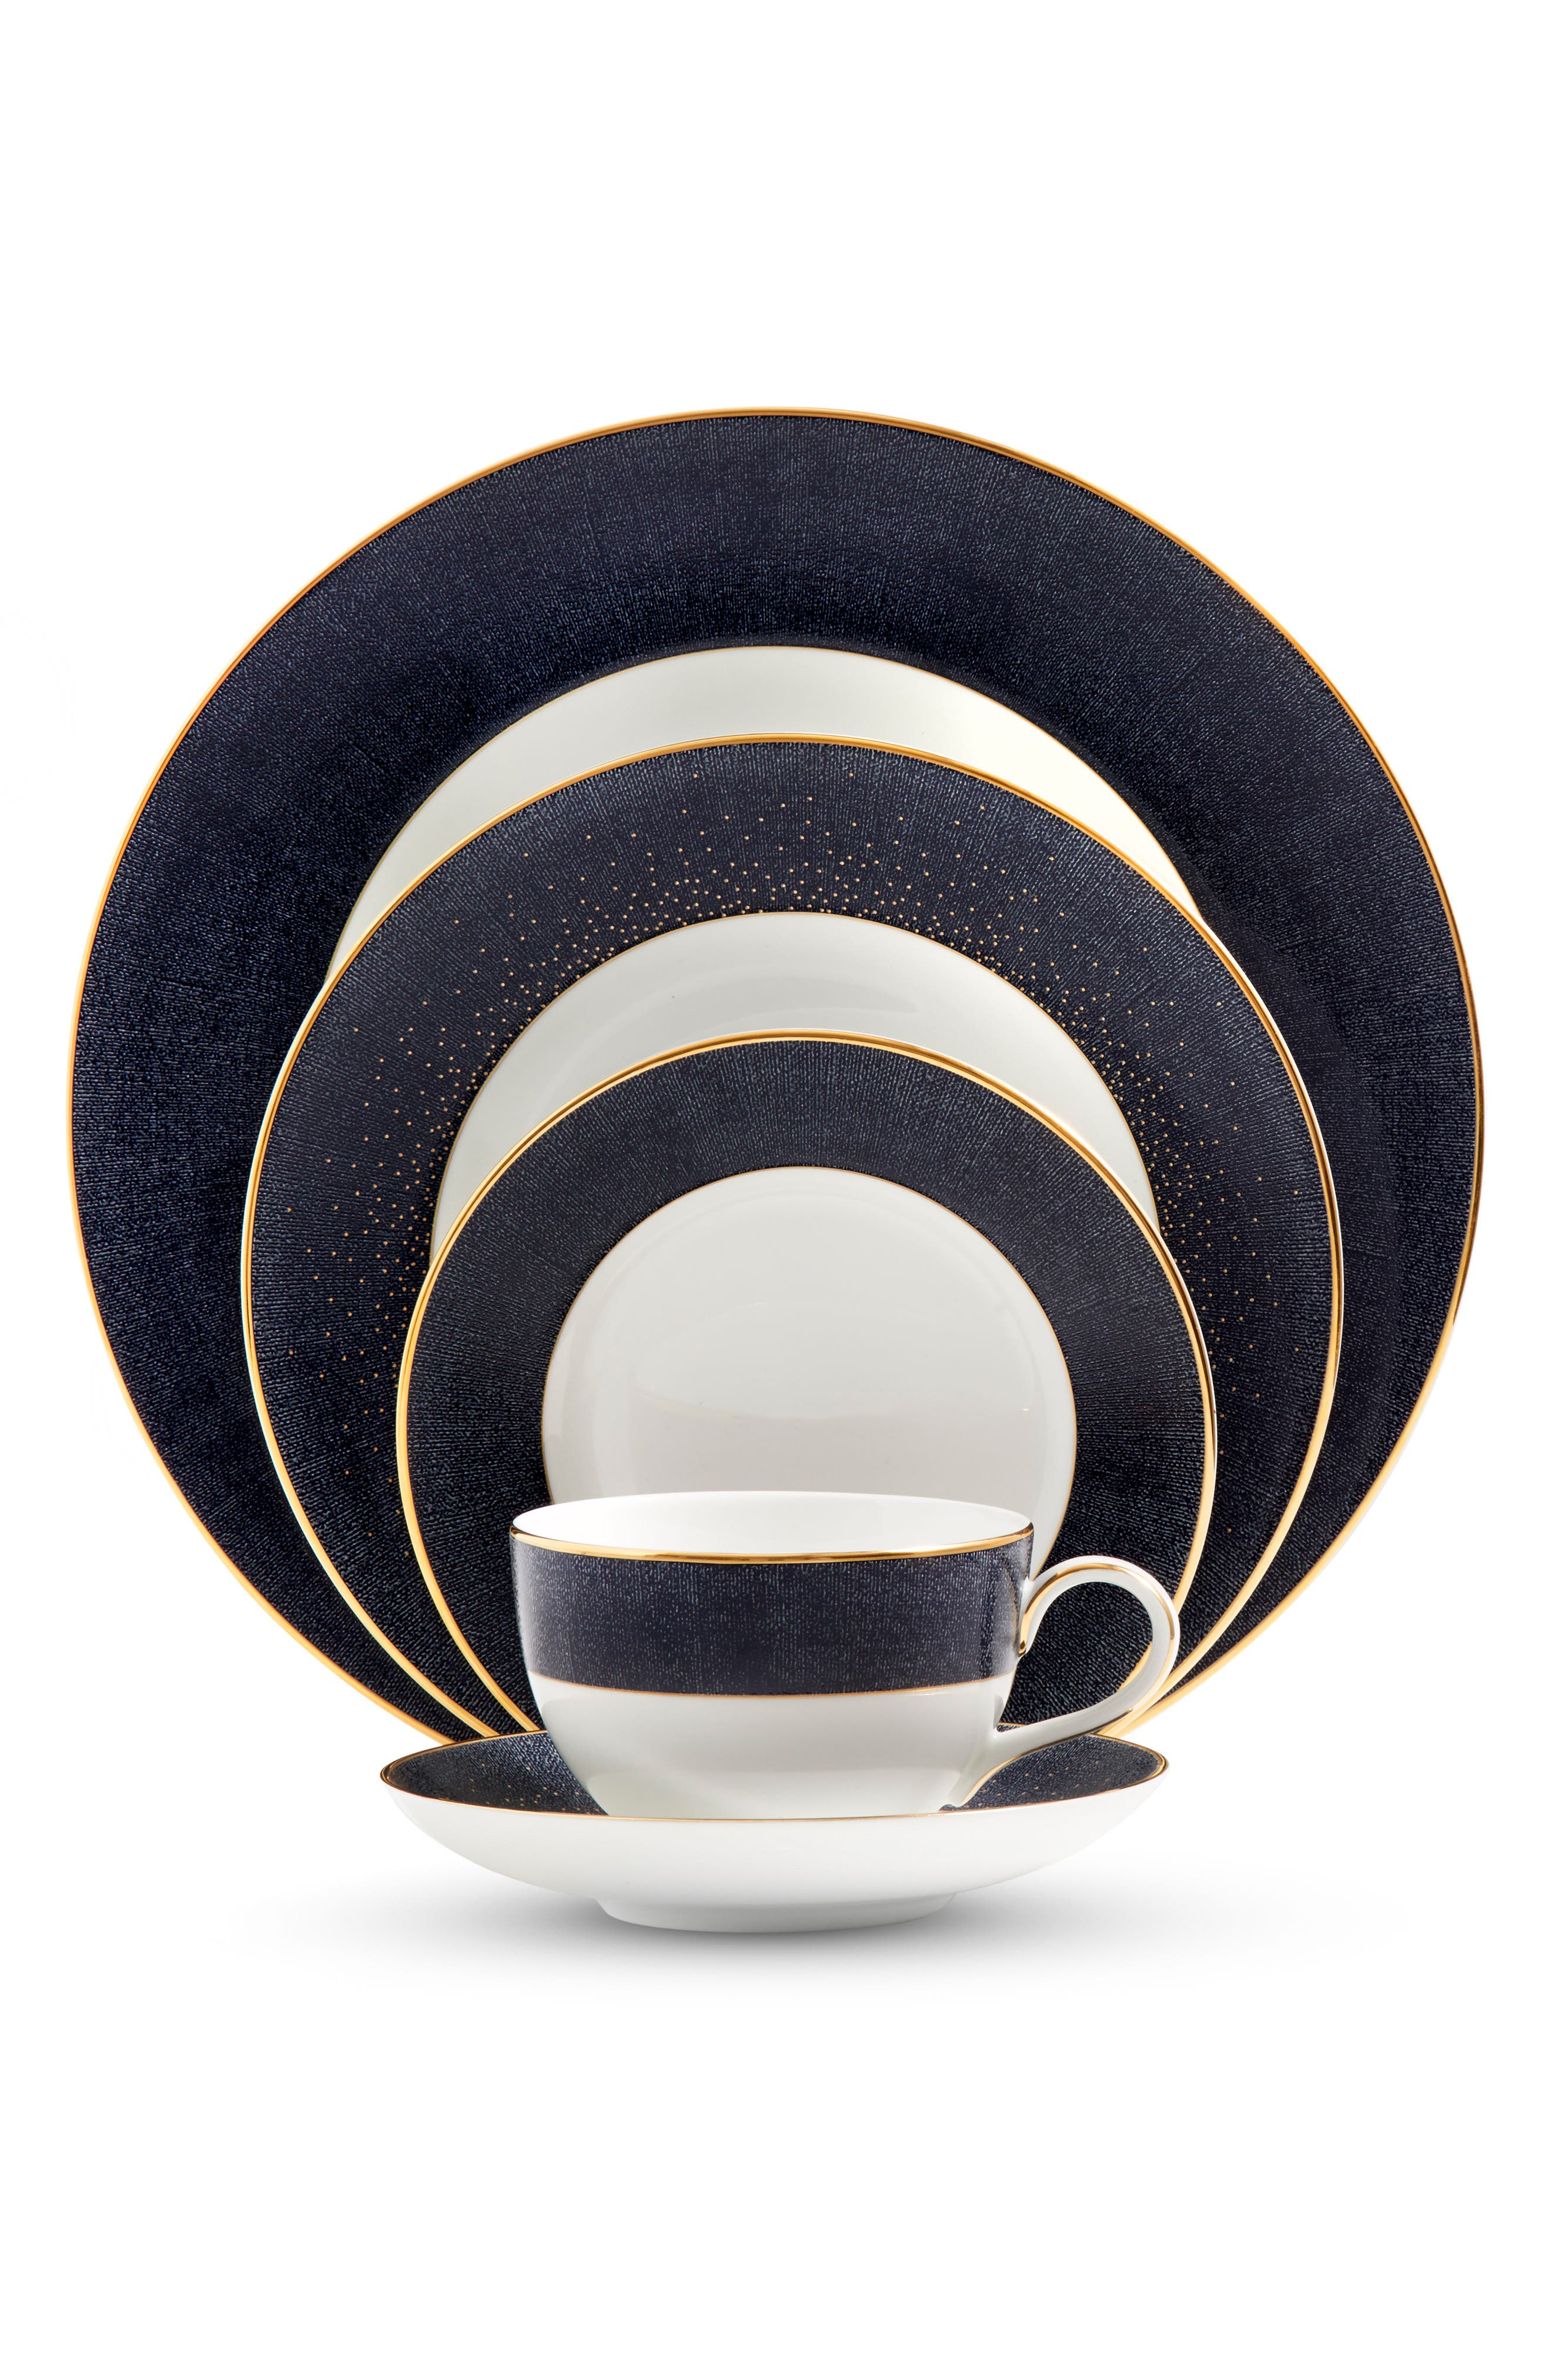 Monique Lhuillier Waterford Stardust Night 5-Piece Bone China Dinnerware Place Setting,                         Main,                         color, Crystal